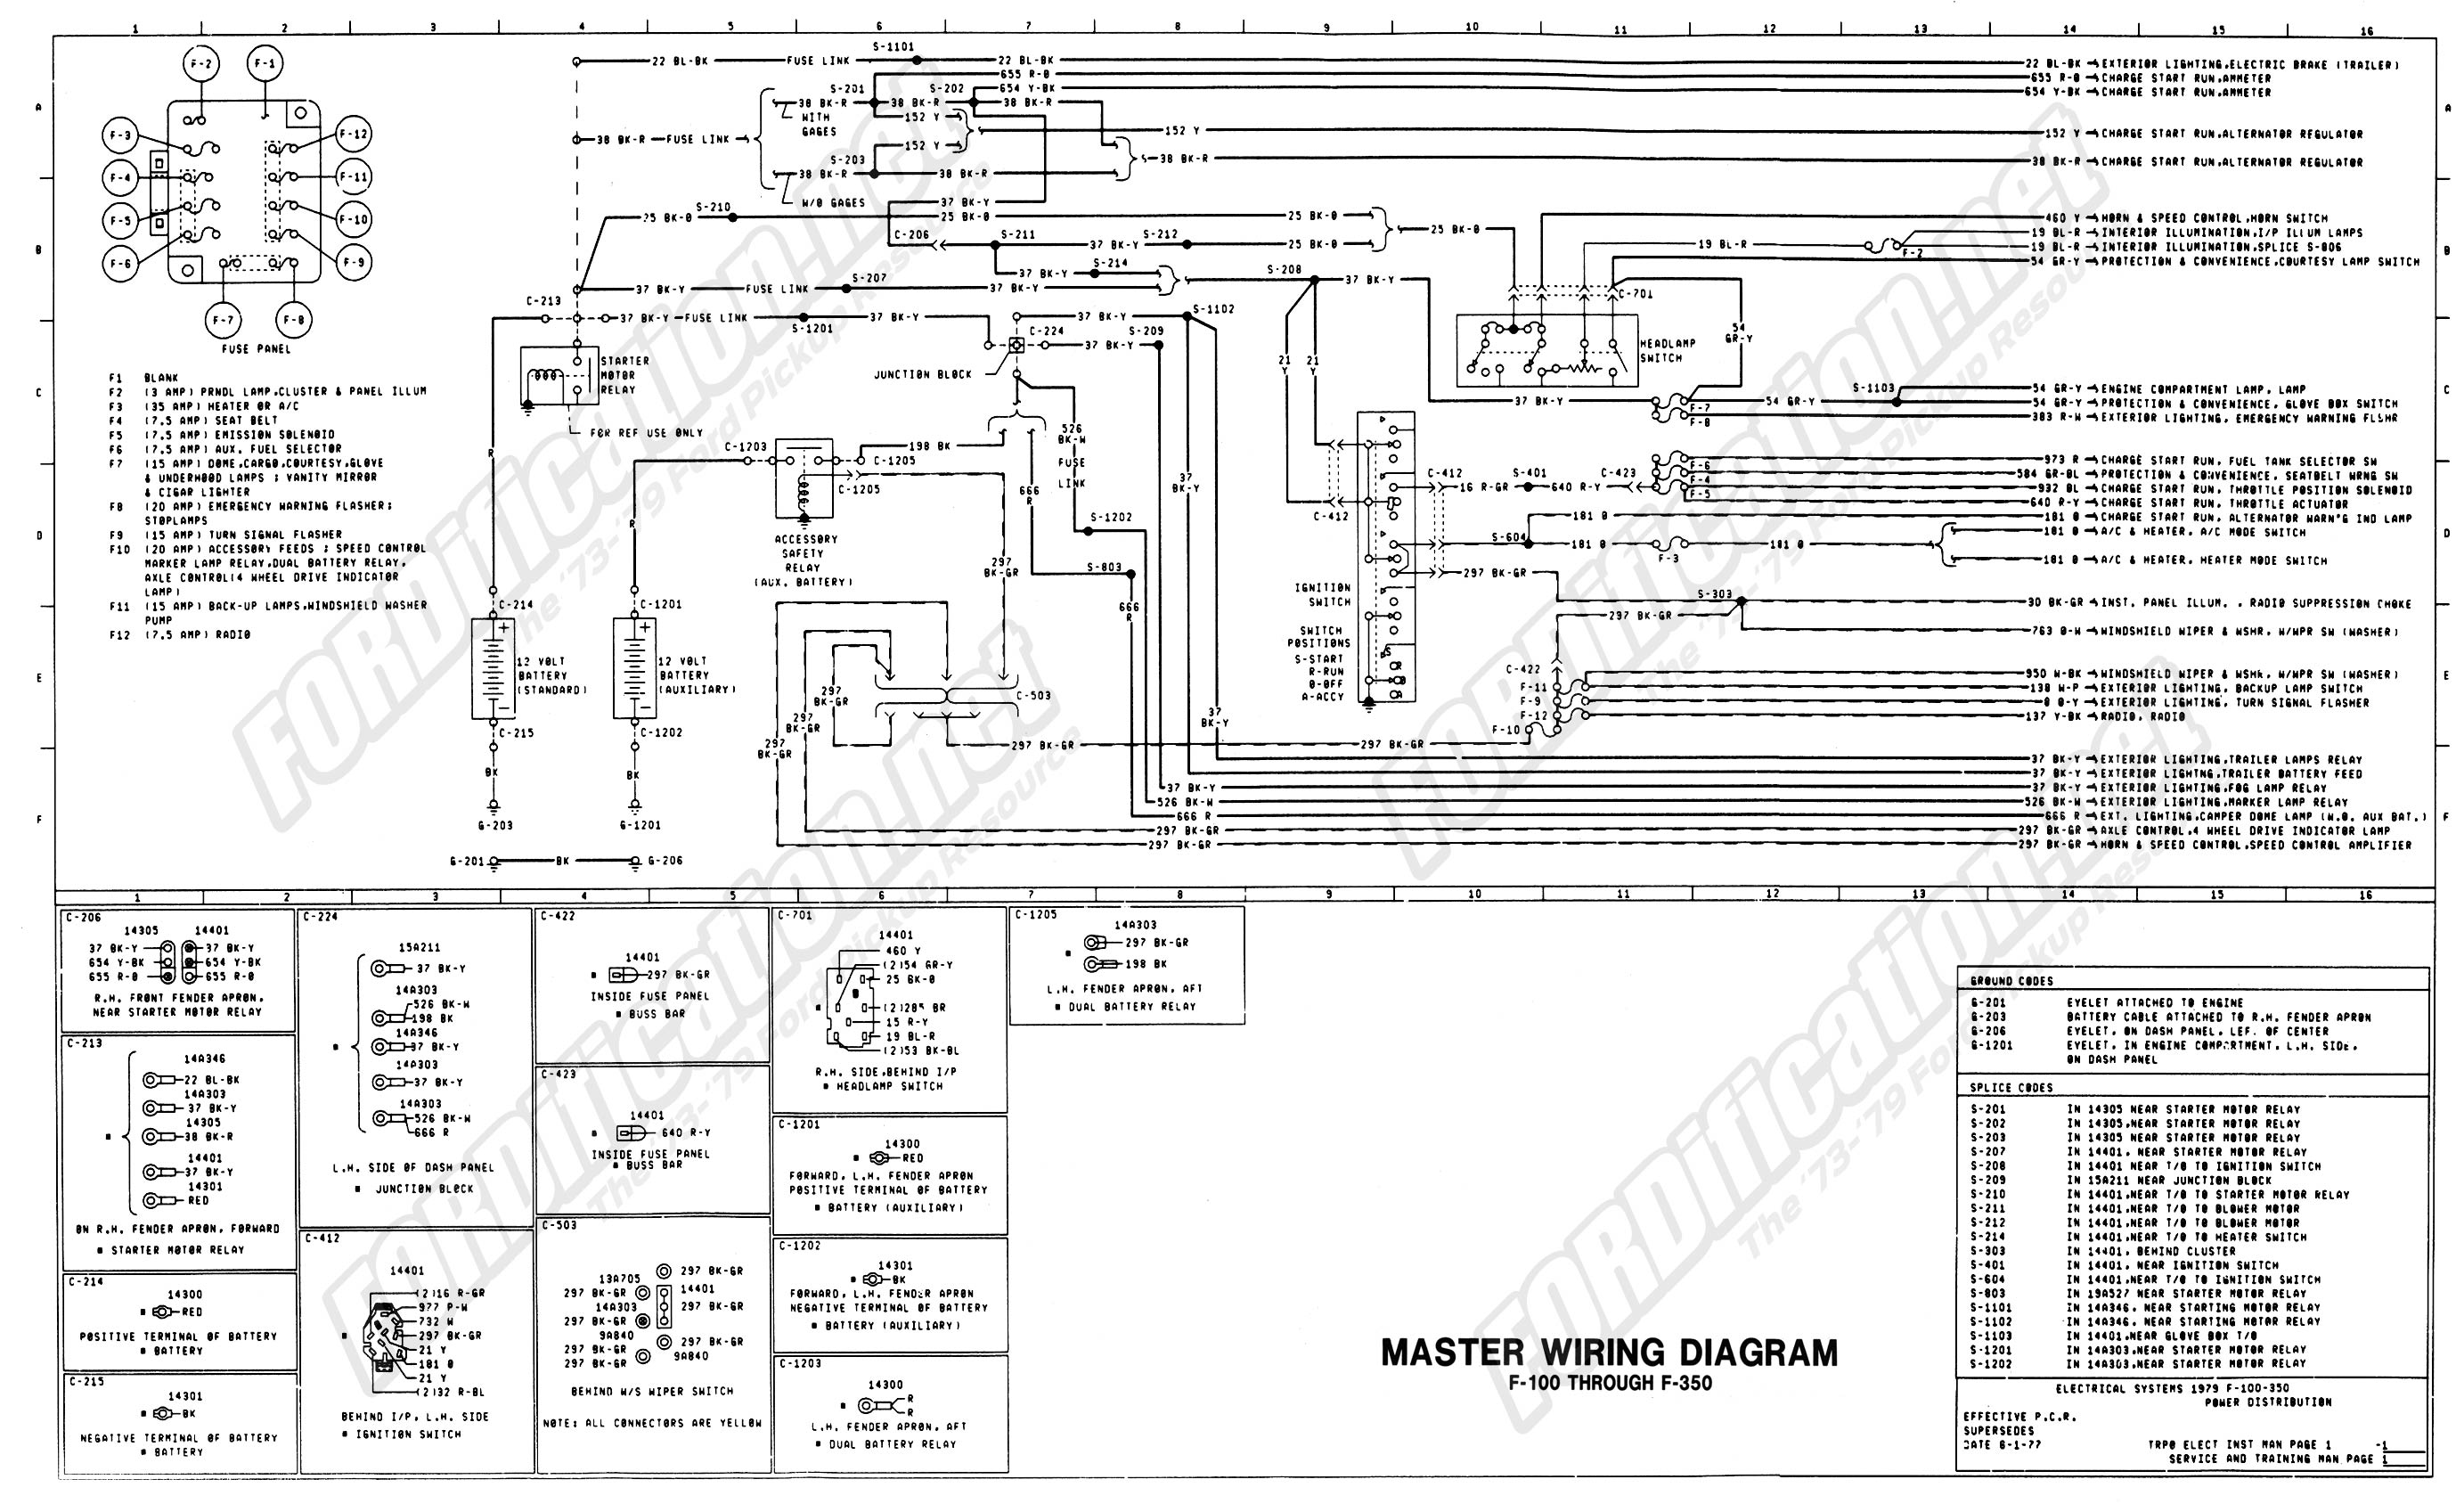 Wiring Diagram For 1977 Ford F150 readingratnet – Ignition Switch Wiring Diagram For 1977 F150